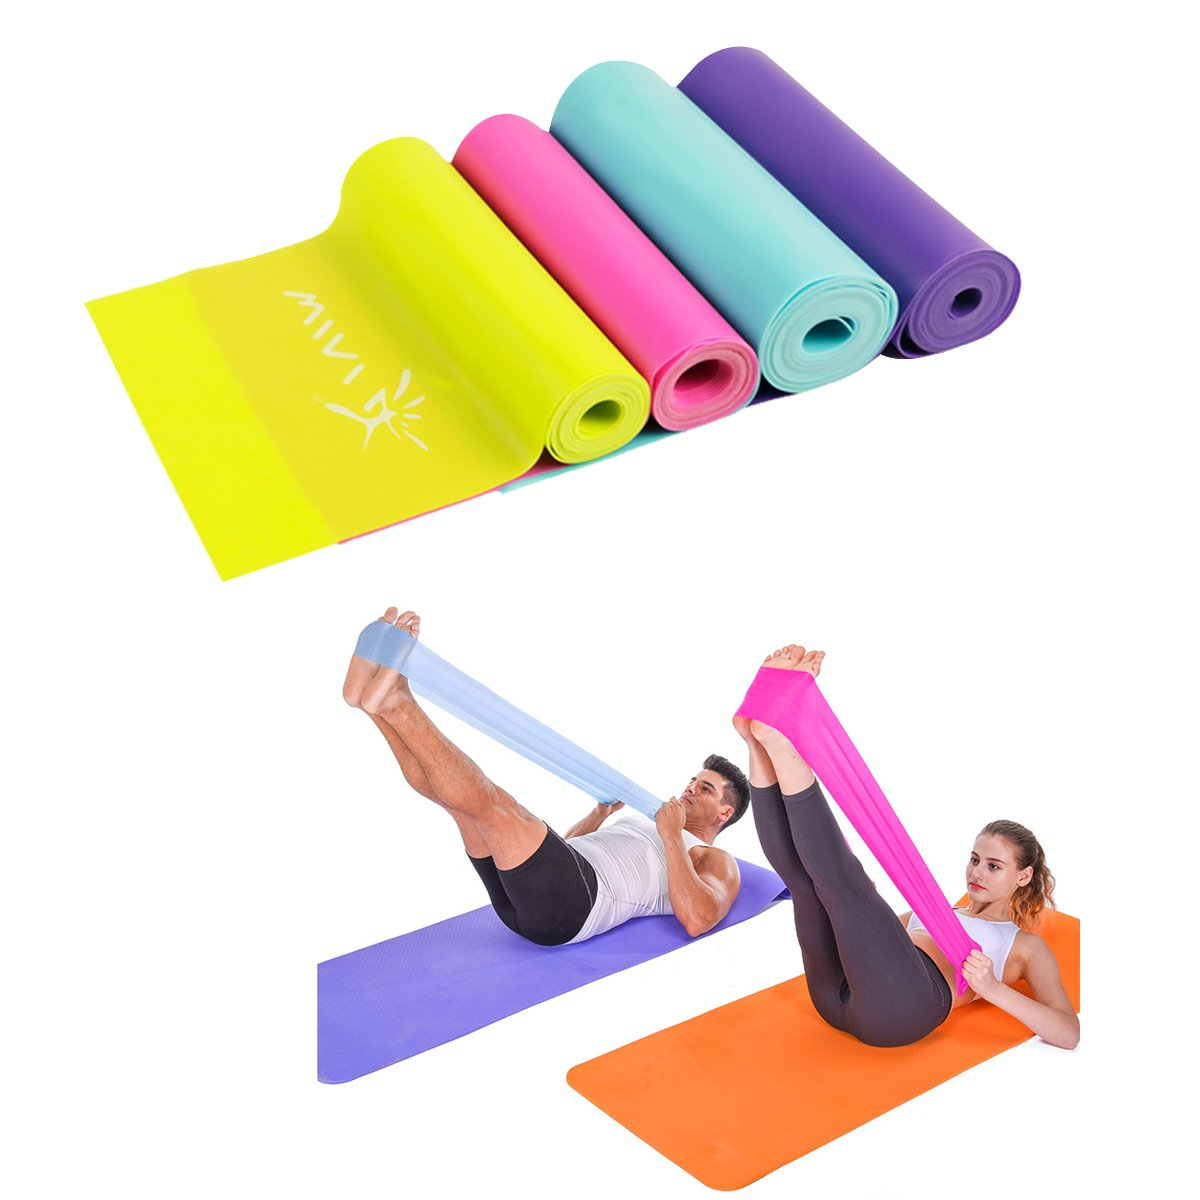 IVIM Latex Free Theraband Long Flat Resistance Bands 1.5/1.8 Meter, Rehab Resistance Bands Exercise Bands Dance Bands for Yoga Pilates Physiotherapy Rehab Home & Gym Green Pink Red Blue